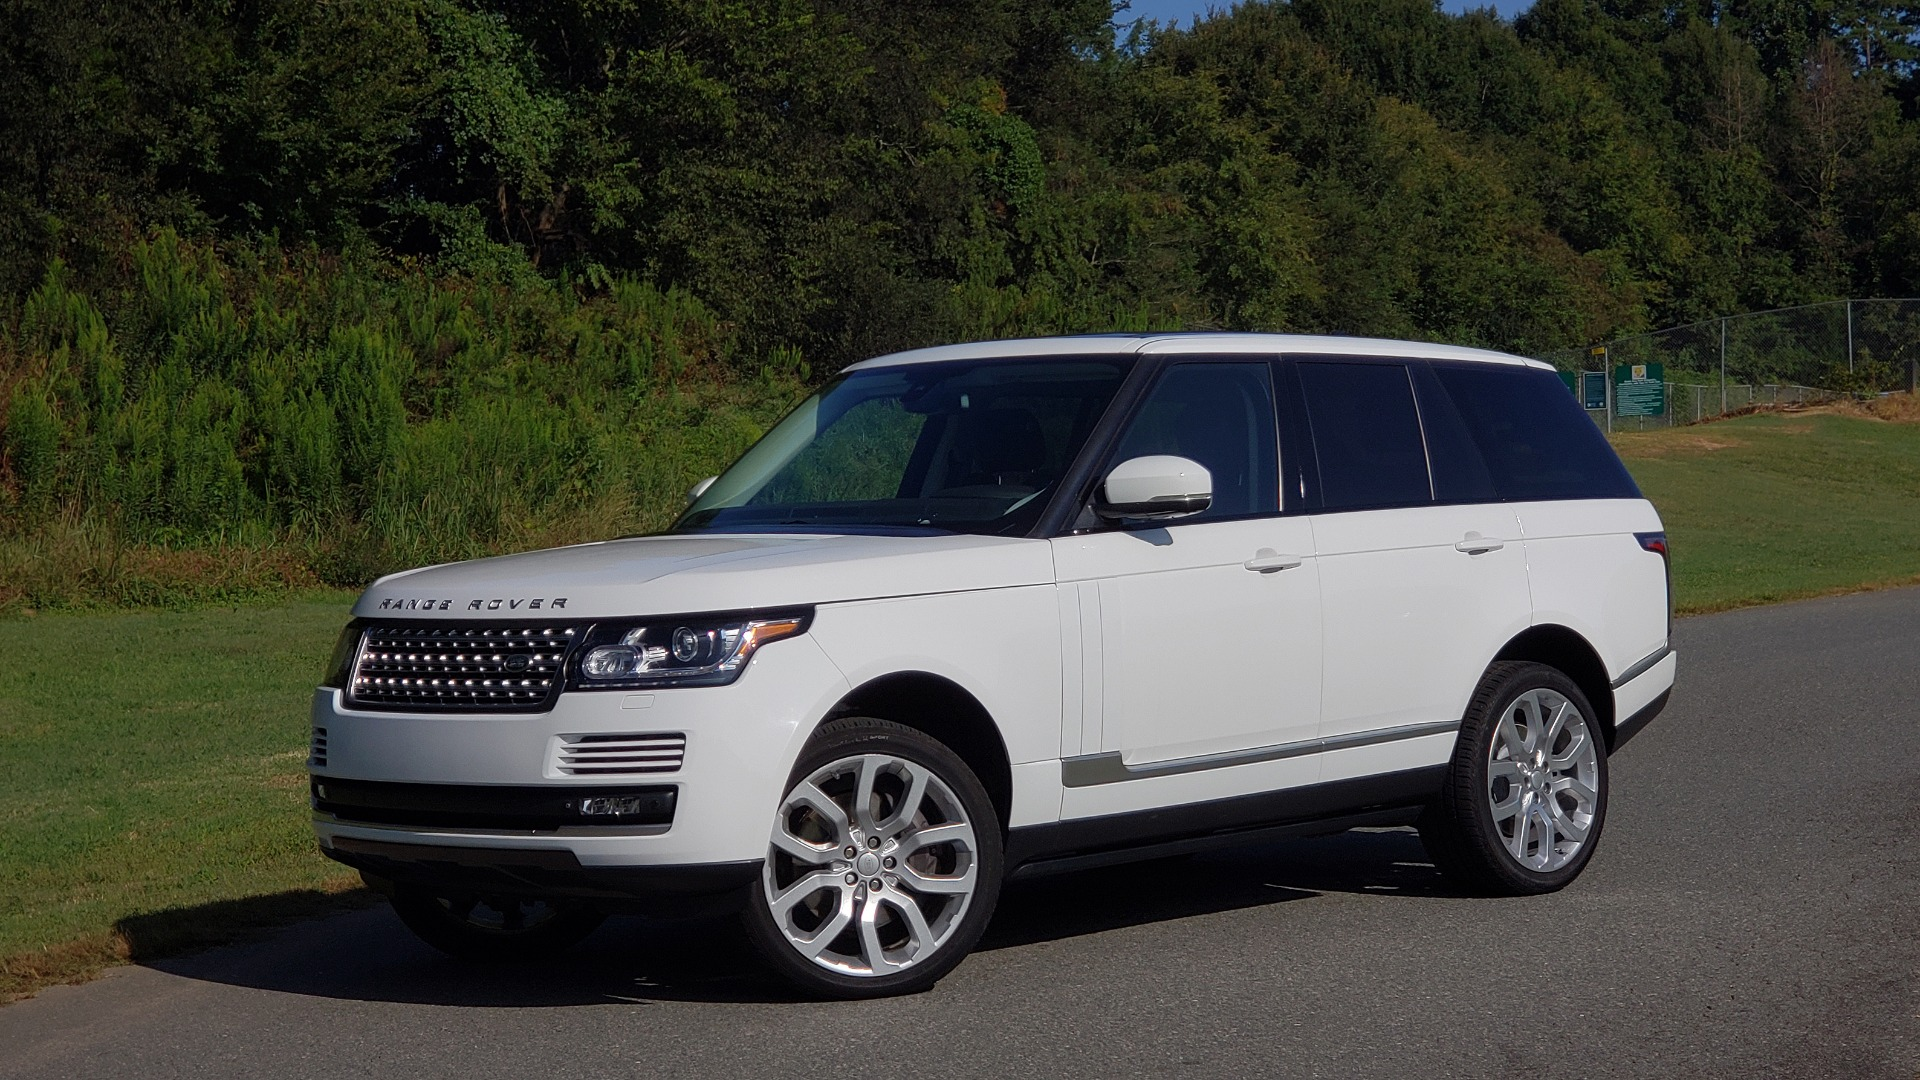 Used 2015 Land Rover Range Rover Supercharged for sale Sold at Formula Imports in Charlotte NC 28227 4